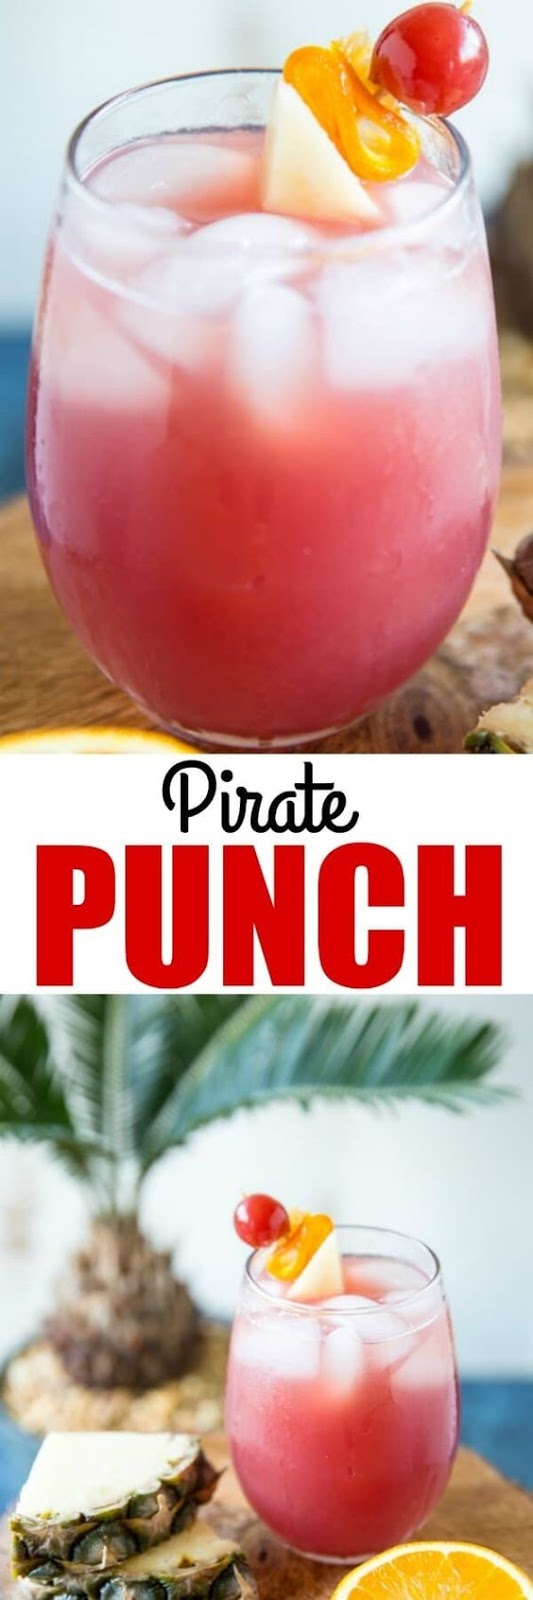 Pirate Punch Recipe